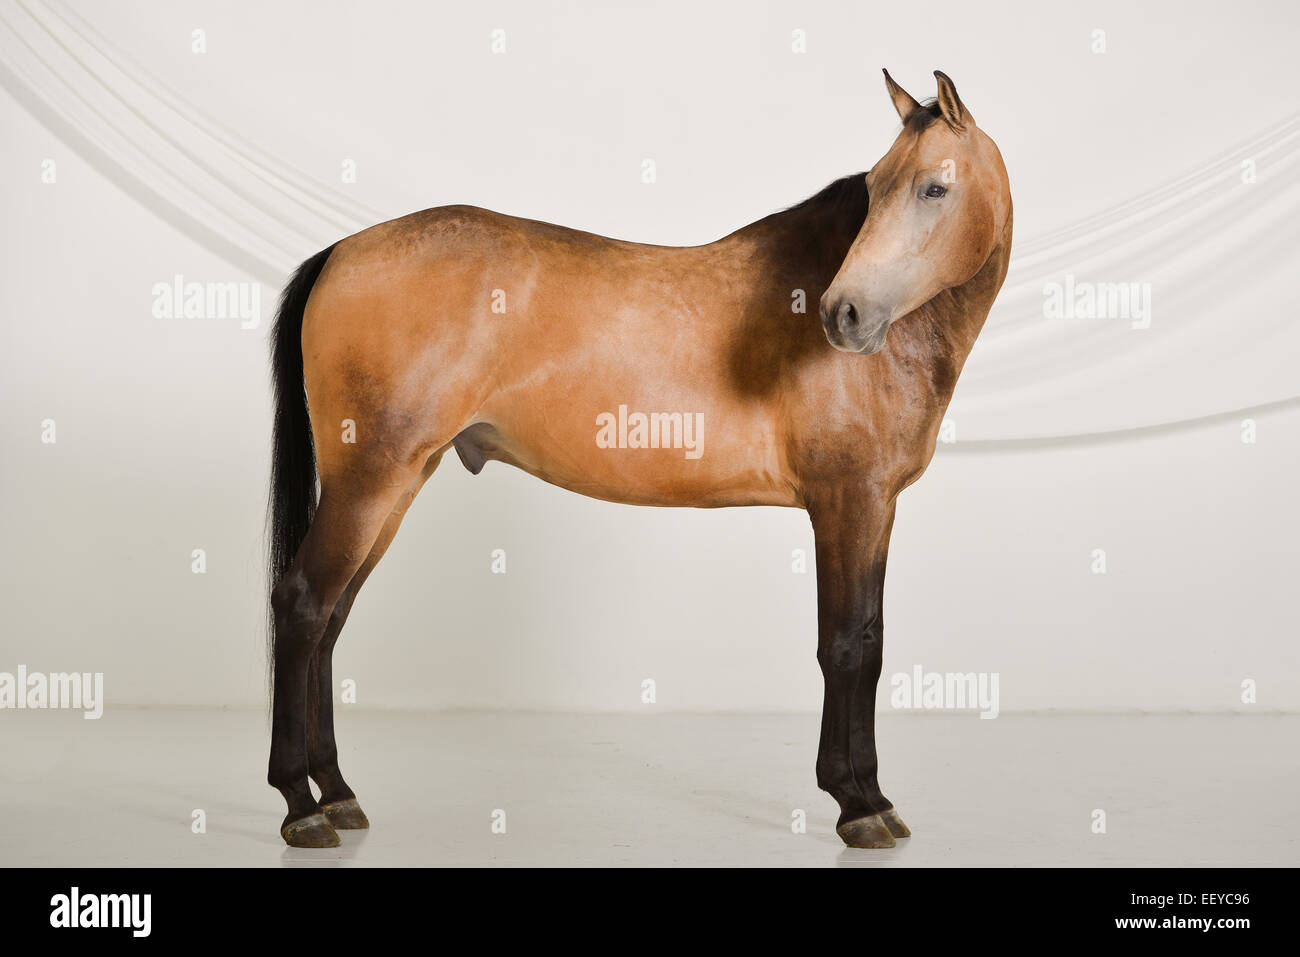 Horse Pose High Resolution Stock Photography And Images Alamy